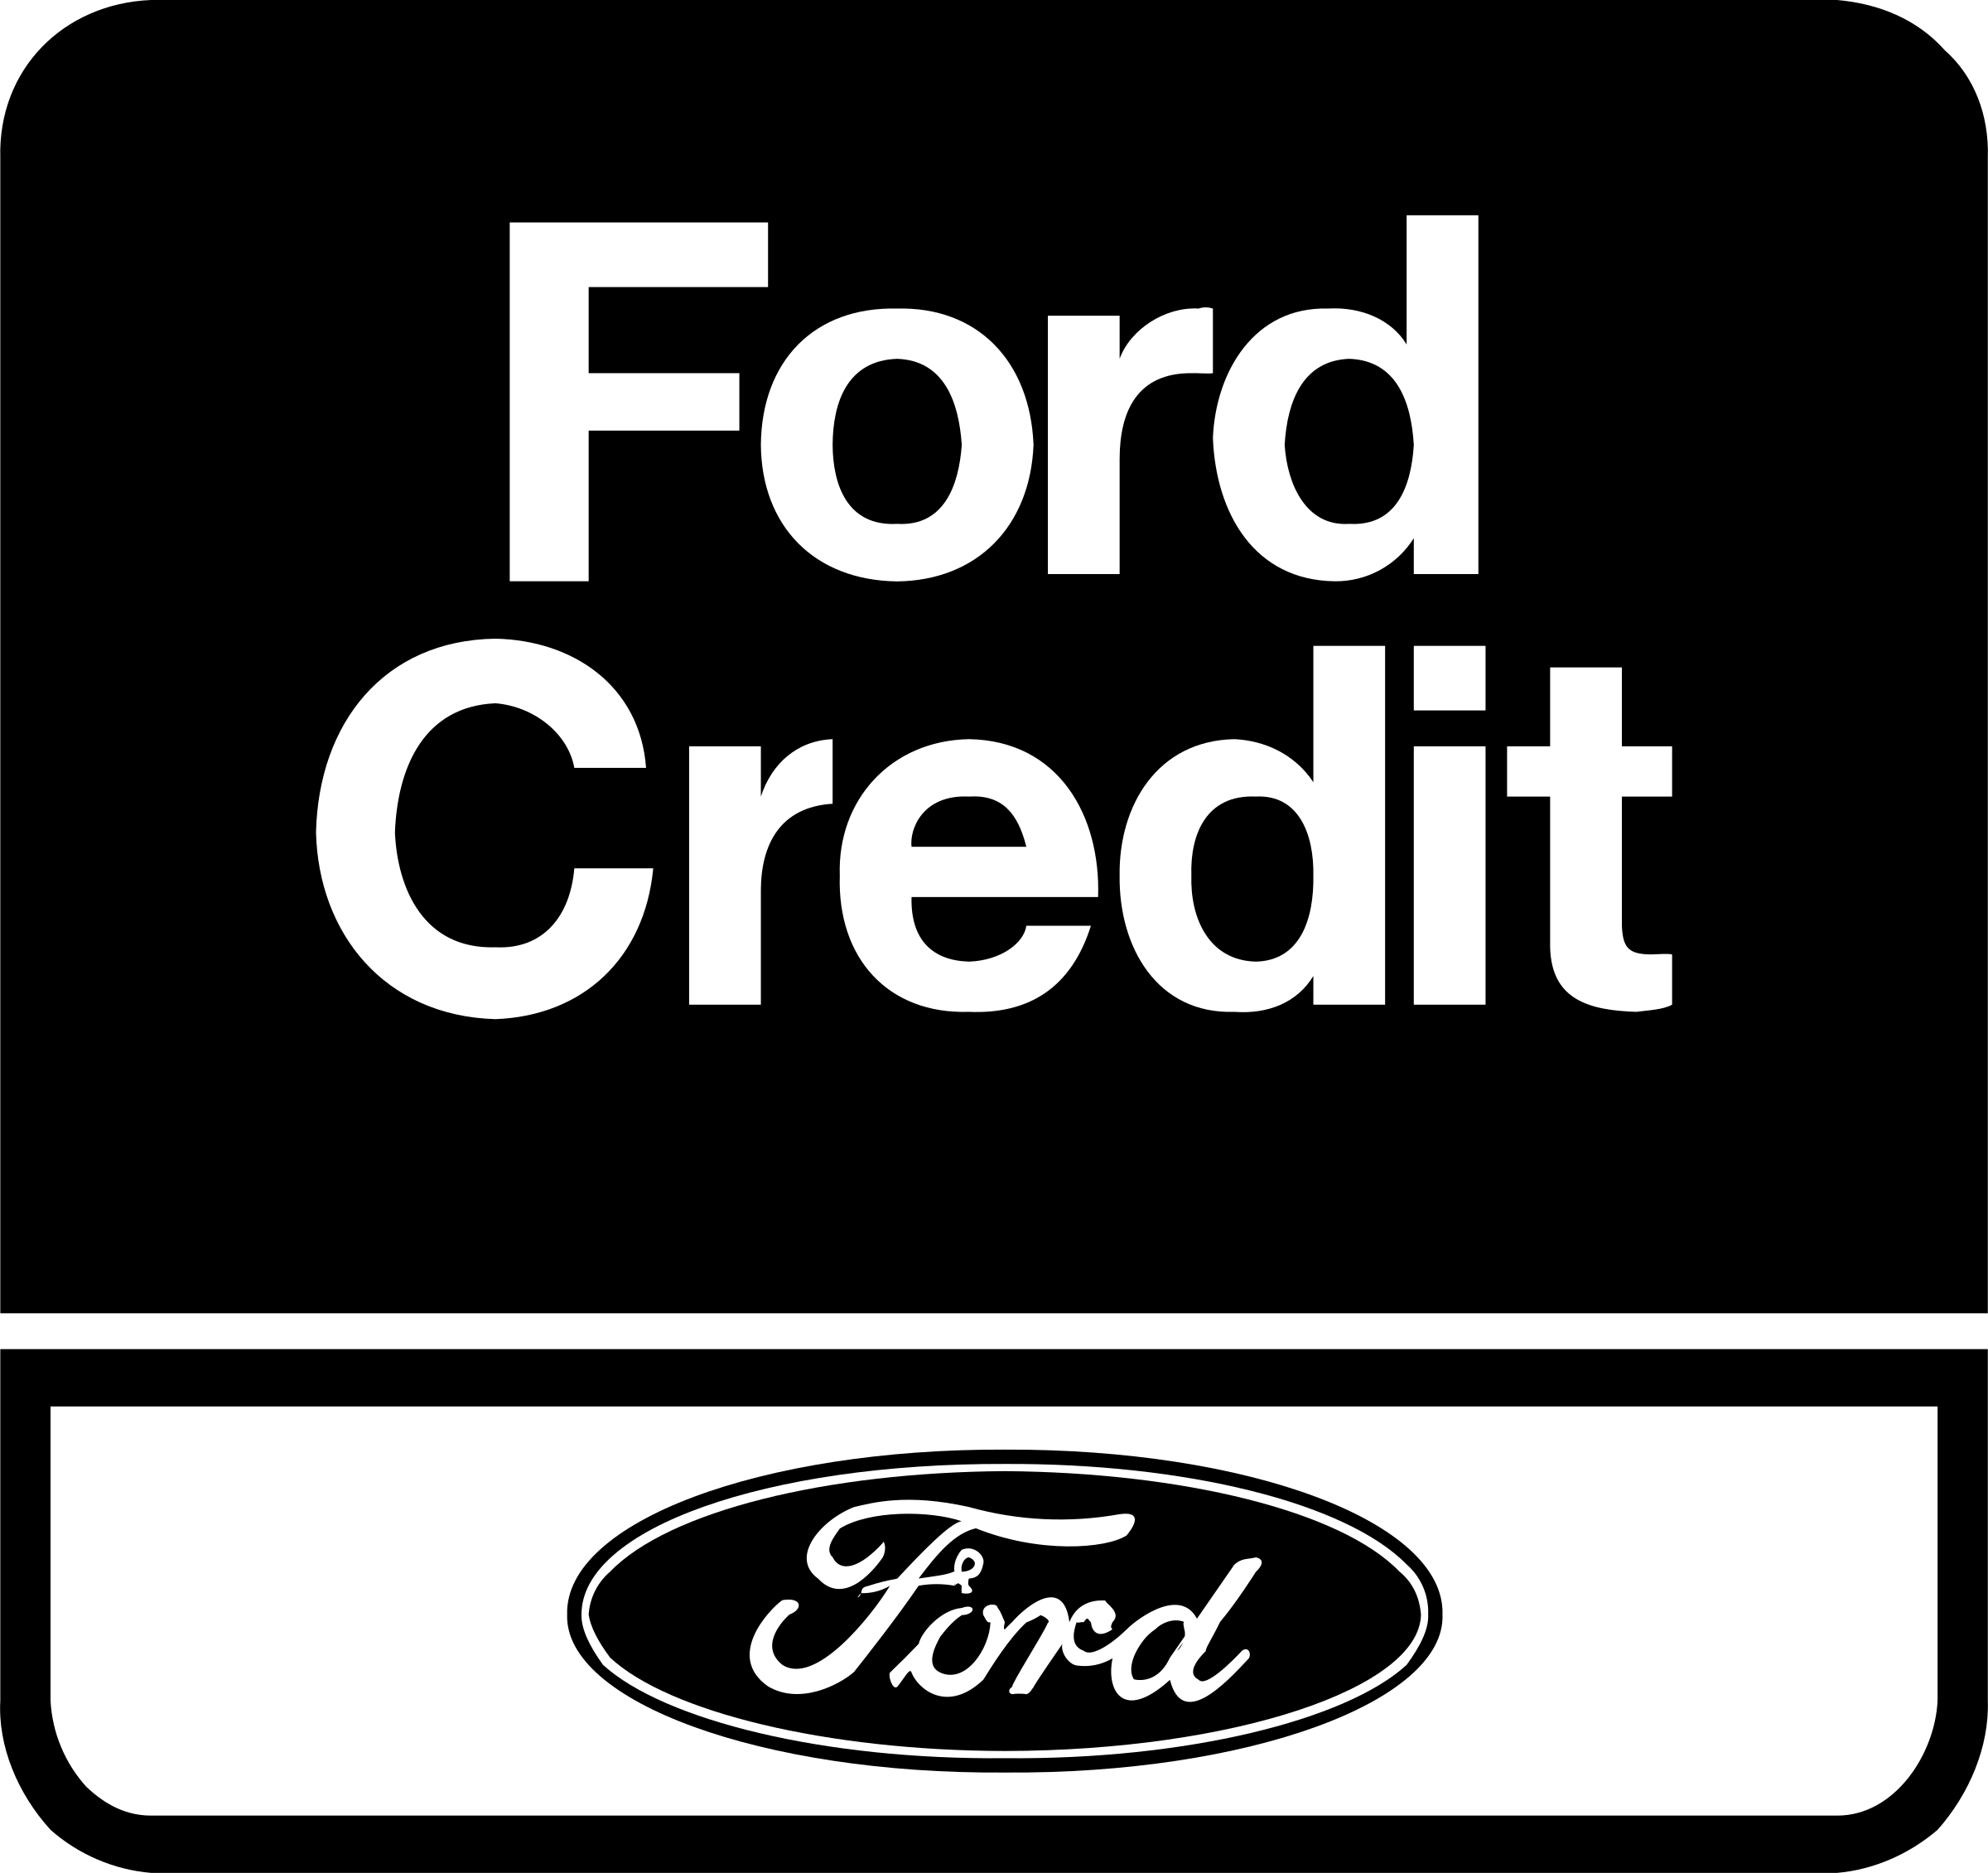 Ford credit logo png transparent